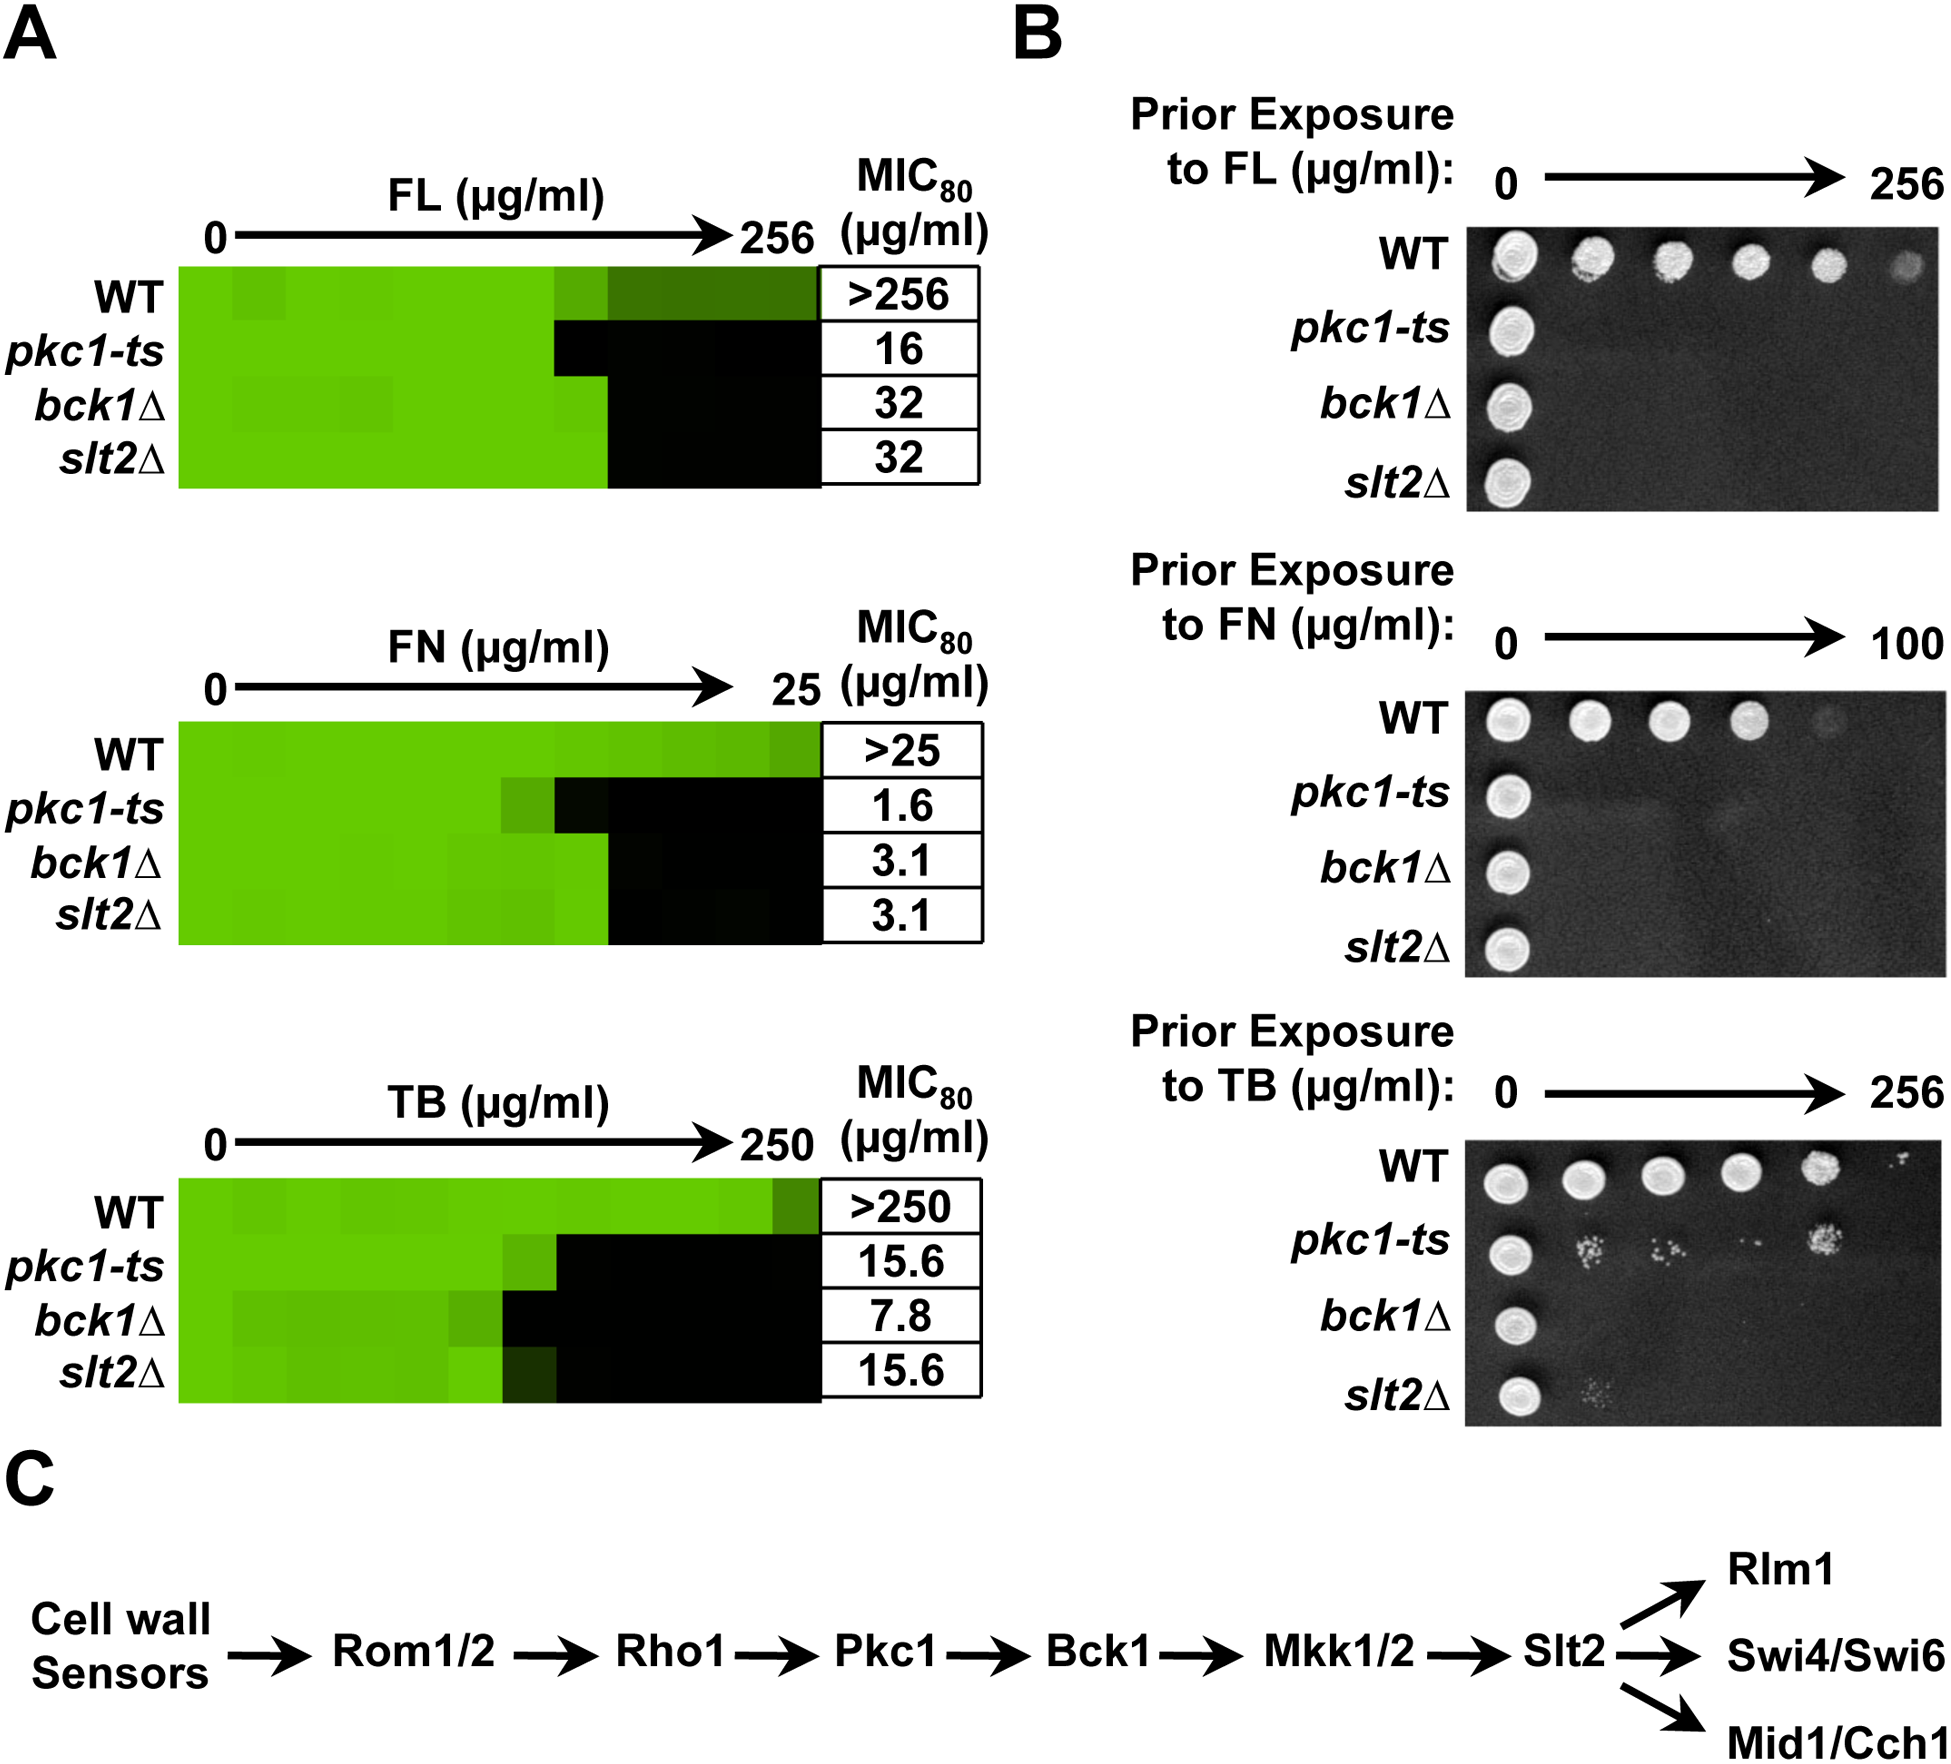 Pkc1 enables basal tolerance to ergosterol biosynthesis inhibitors via the MAPK cascade in <i>Saccharomyces cerevisiae</i>.